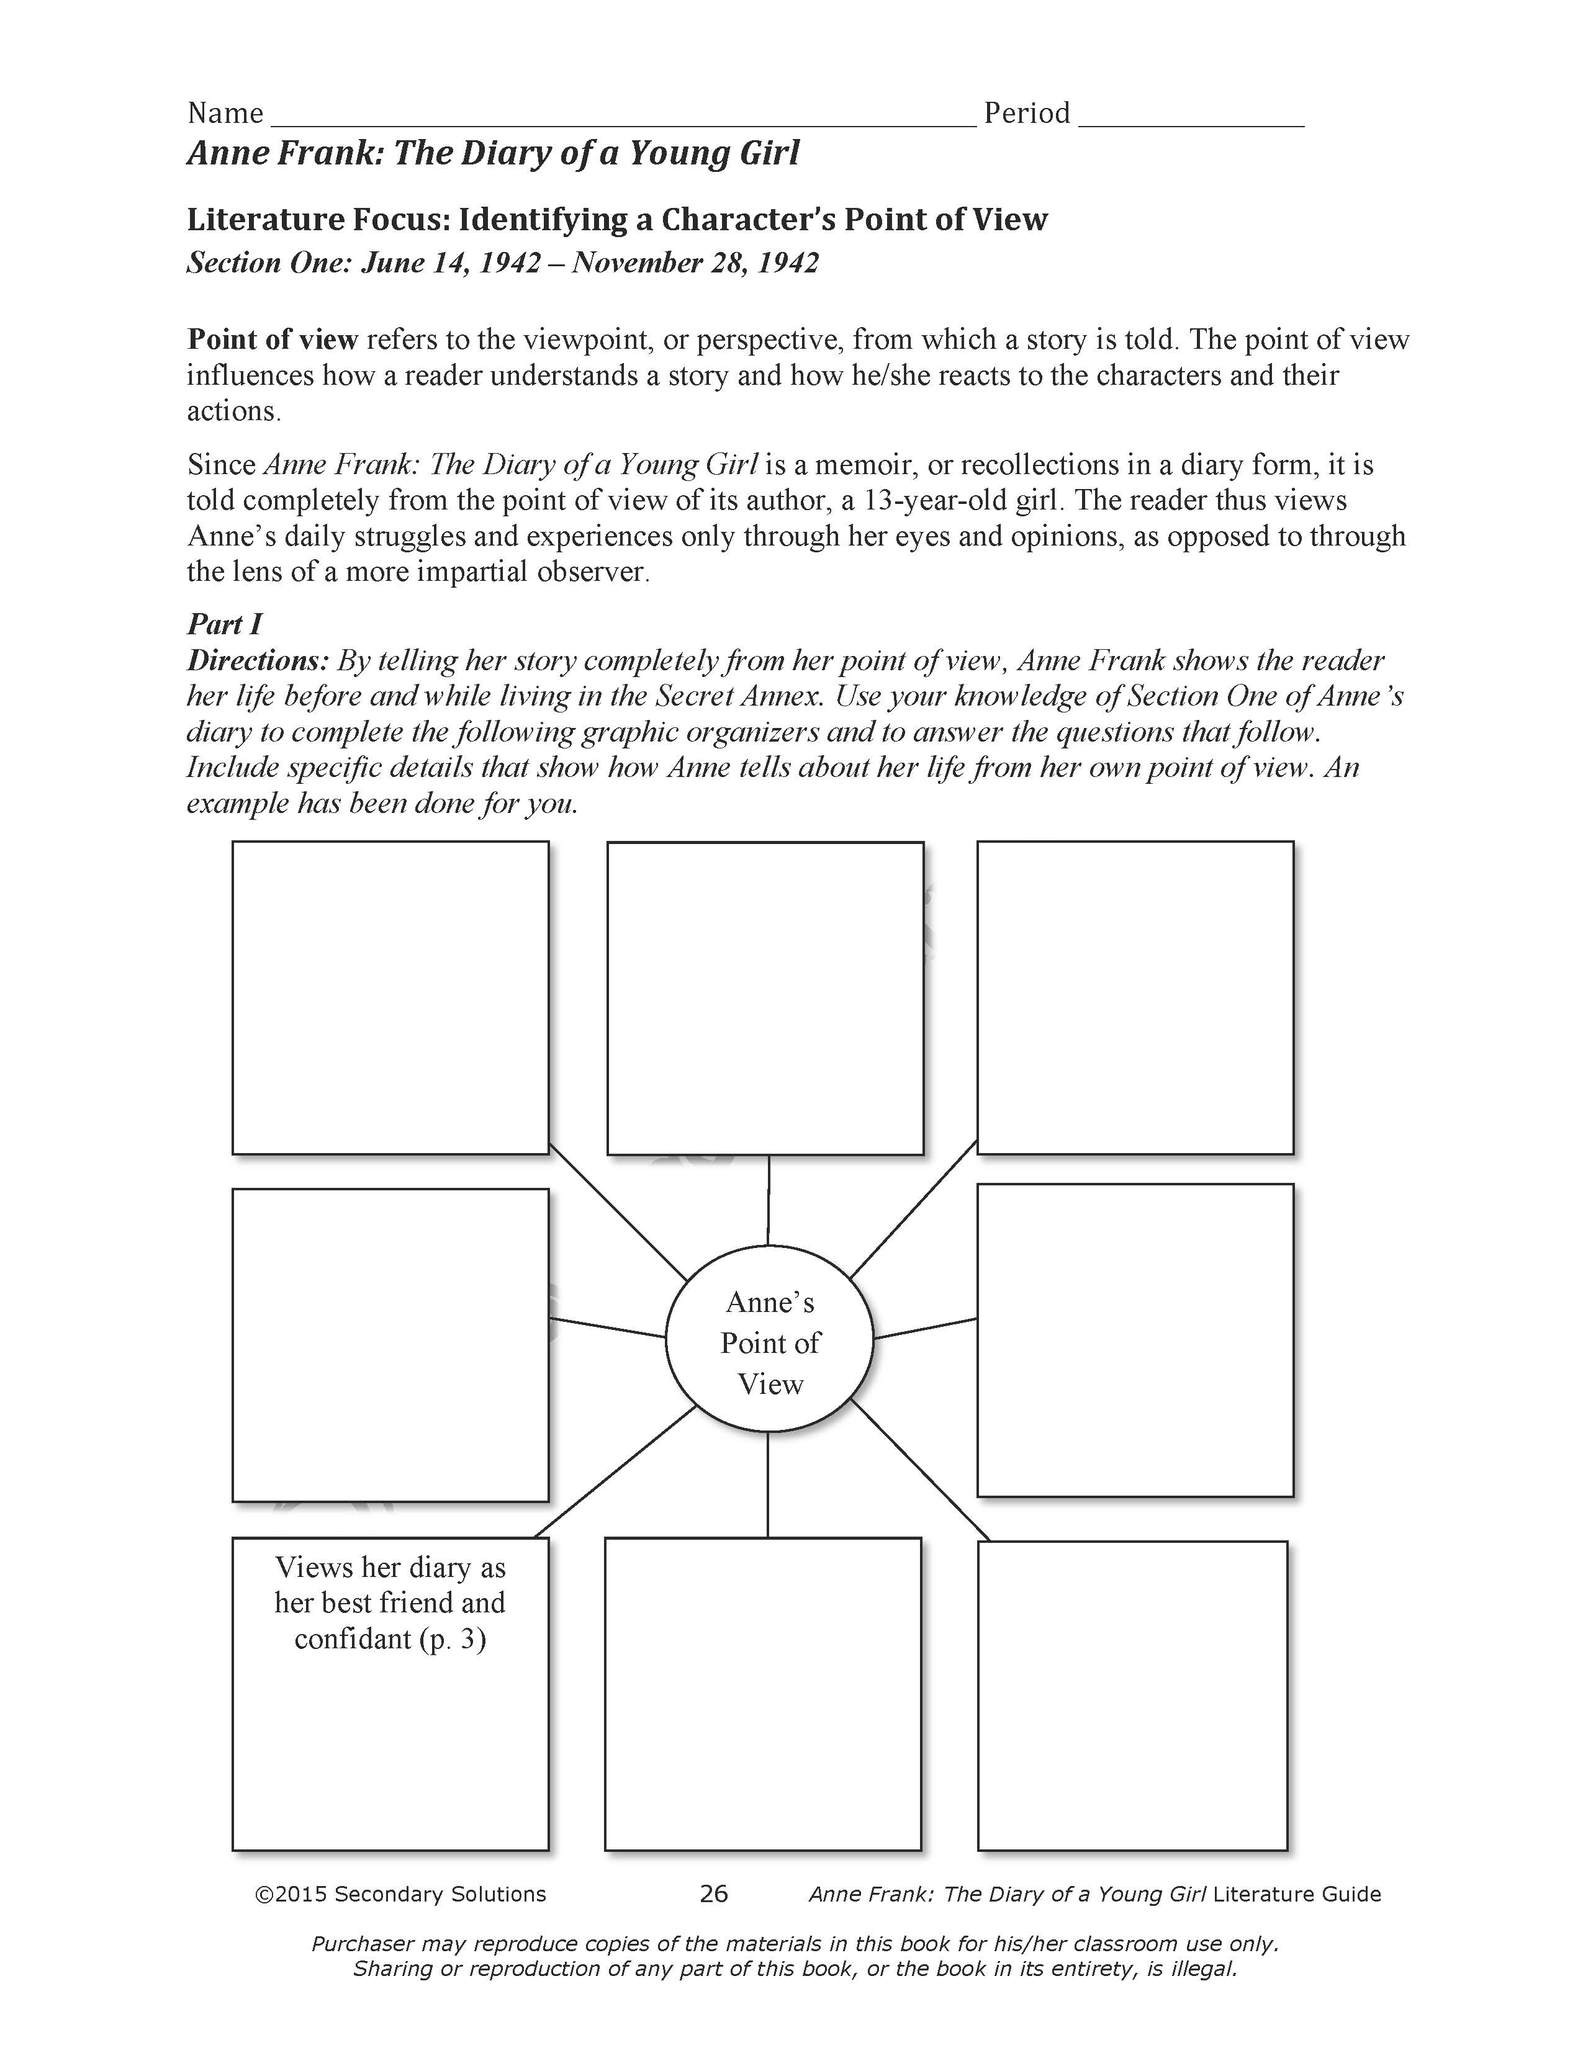 Anne Frank Worksheets Middle School Anne Frank the Diary Of A Young Girl Mon Core Aligned Novel Study Guide Distance Learning